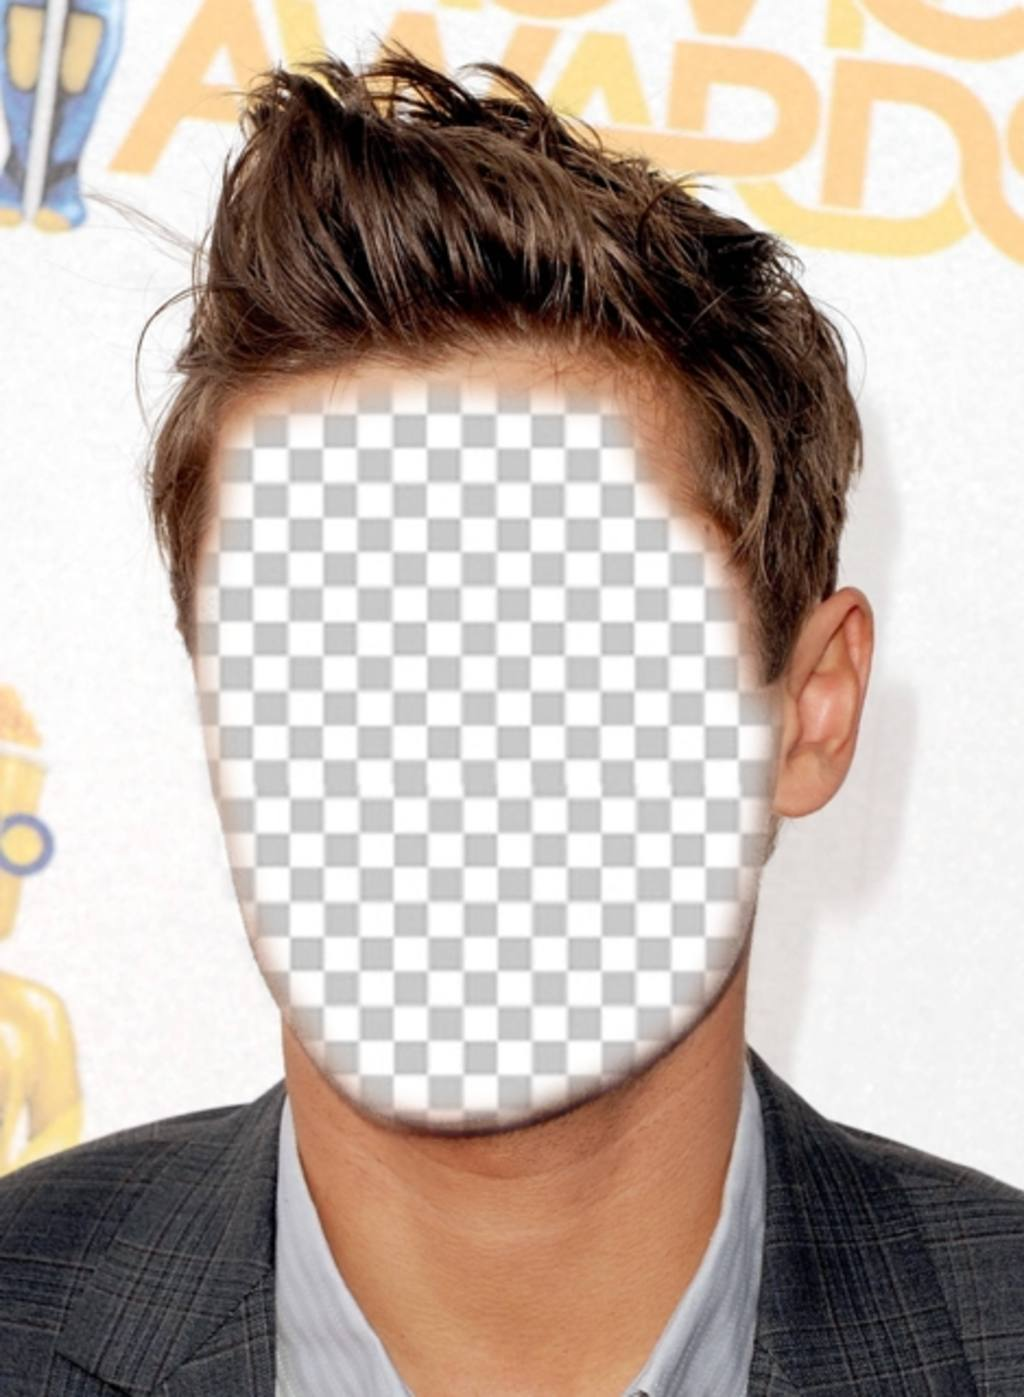 Change of hairstyle like Zac Efron with this online photomontage